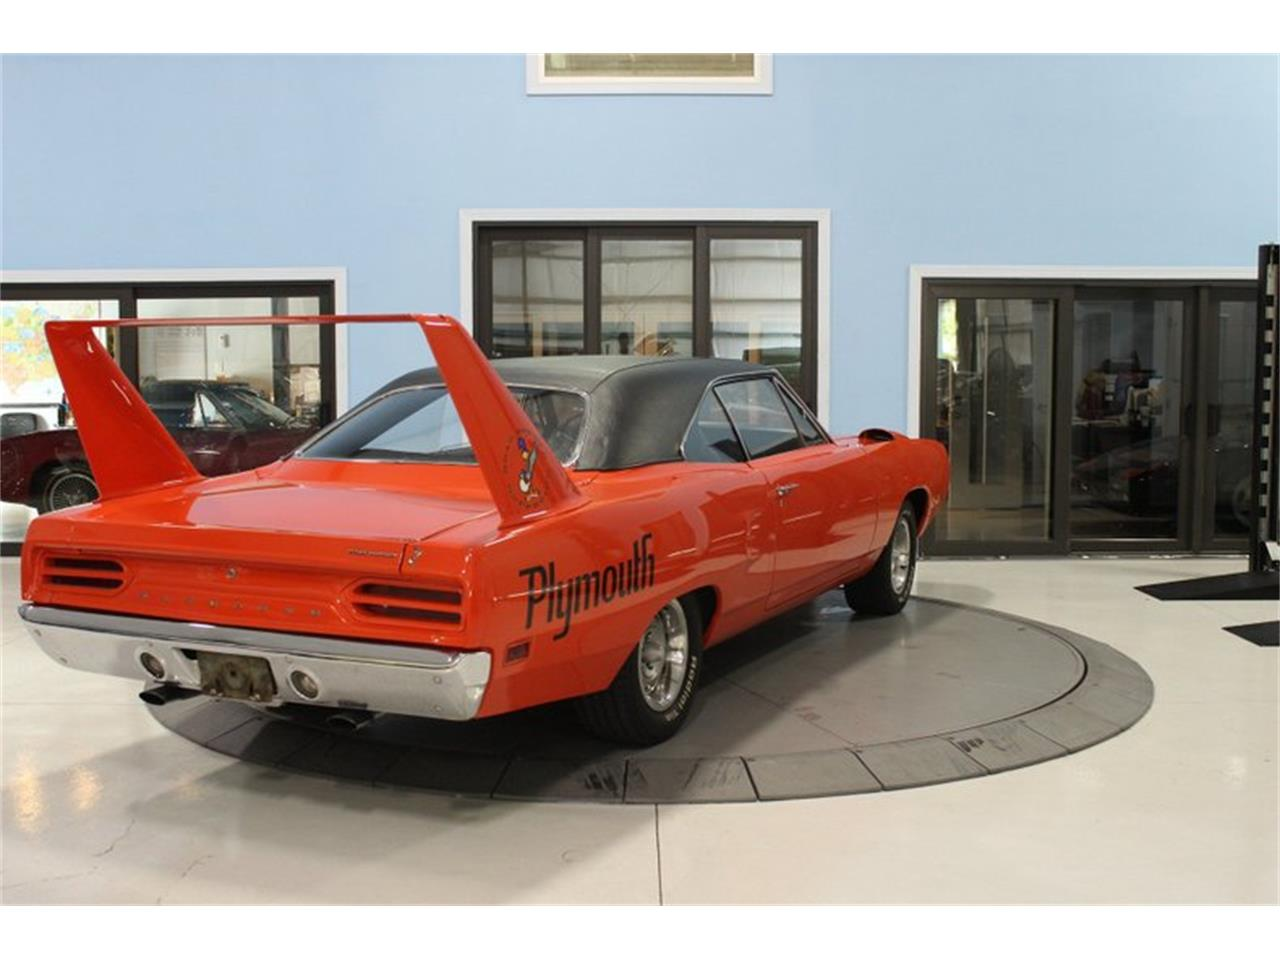 1970 Plymouth Superbird (CC-1275371) for sale in Punta Gorda, Florida